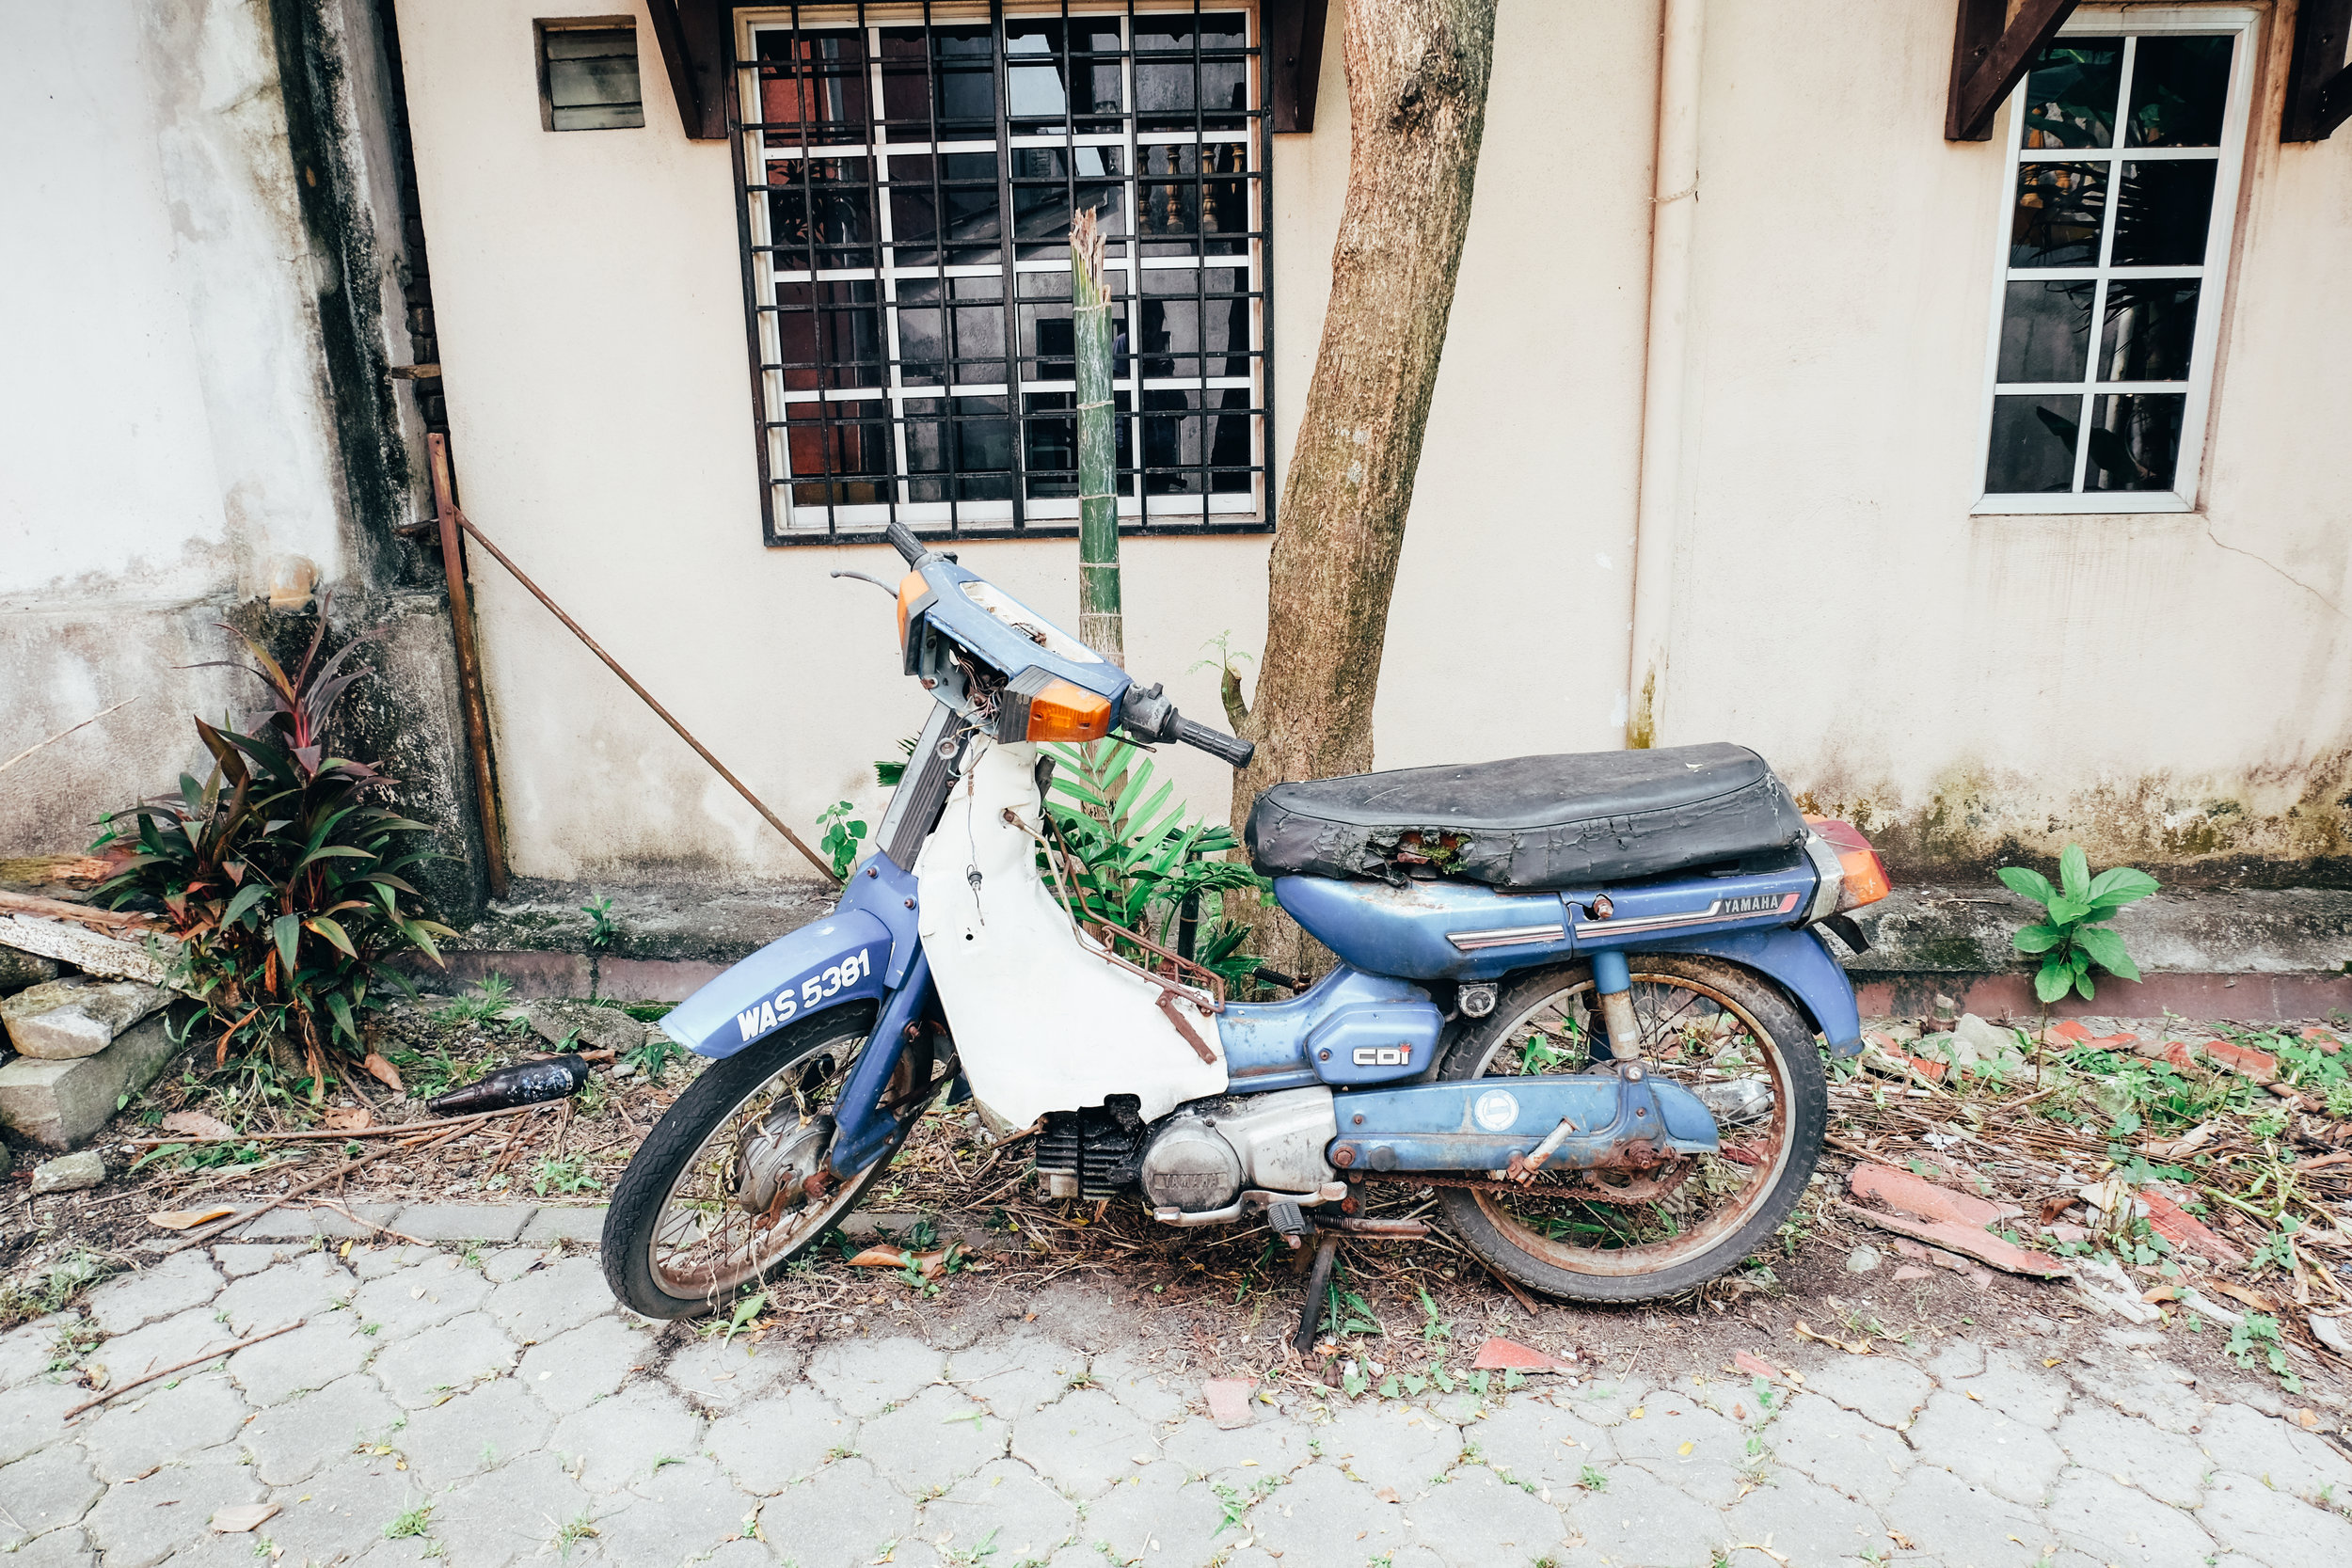 an abandoned motorcycle.